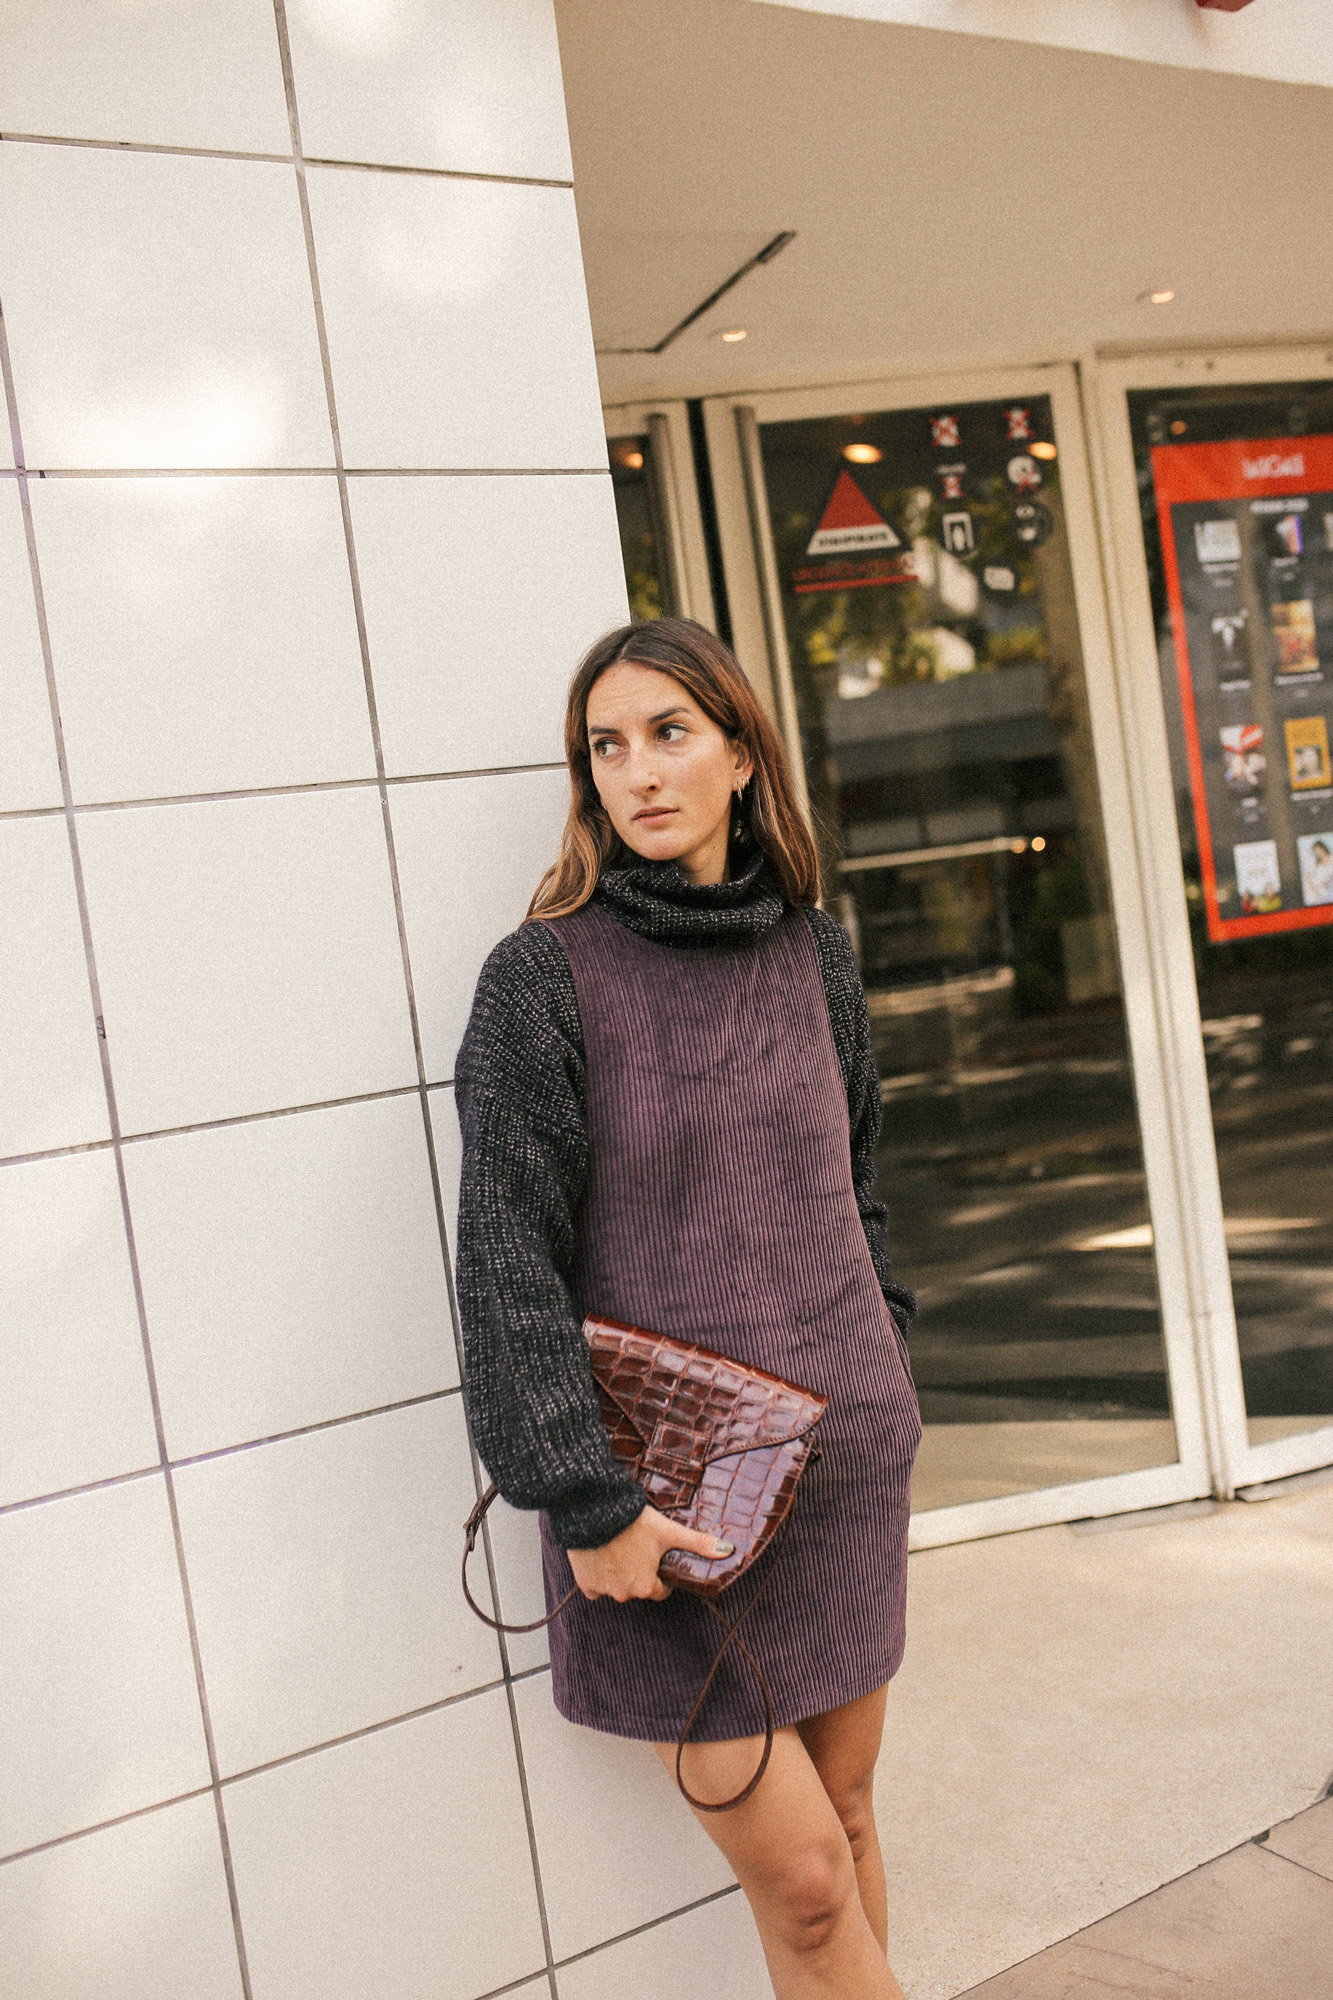 CORDOVAN DRESS  -  NICHOLSON NICHOLSON VOLCANO KNITWEAR  -  ANTHOLOGY ROMA CUCA BAG